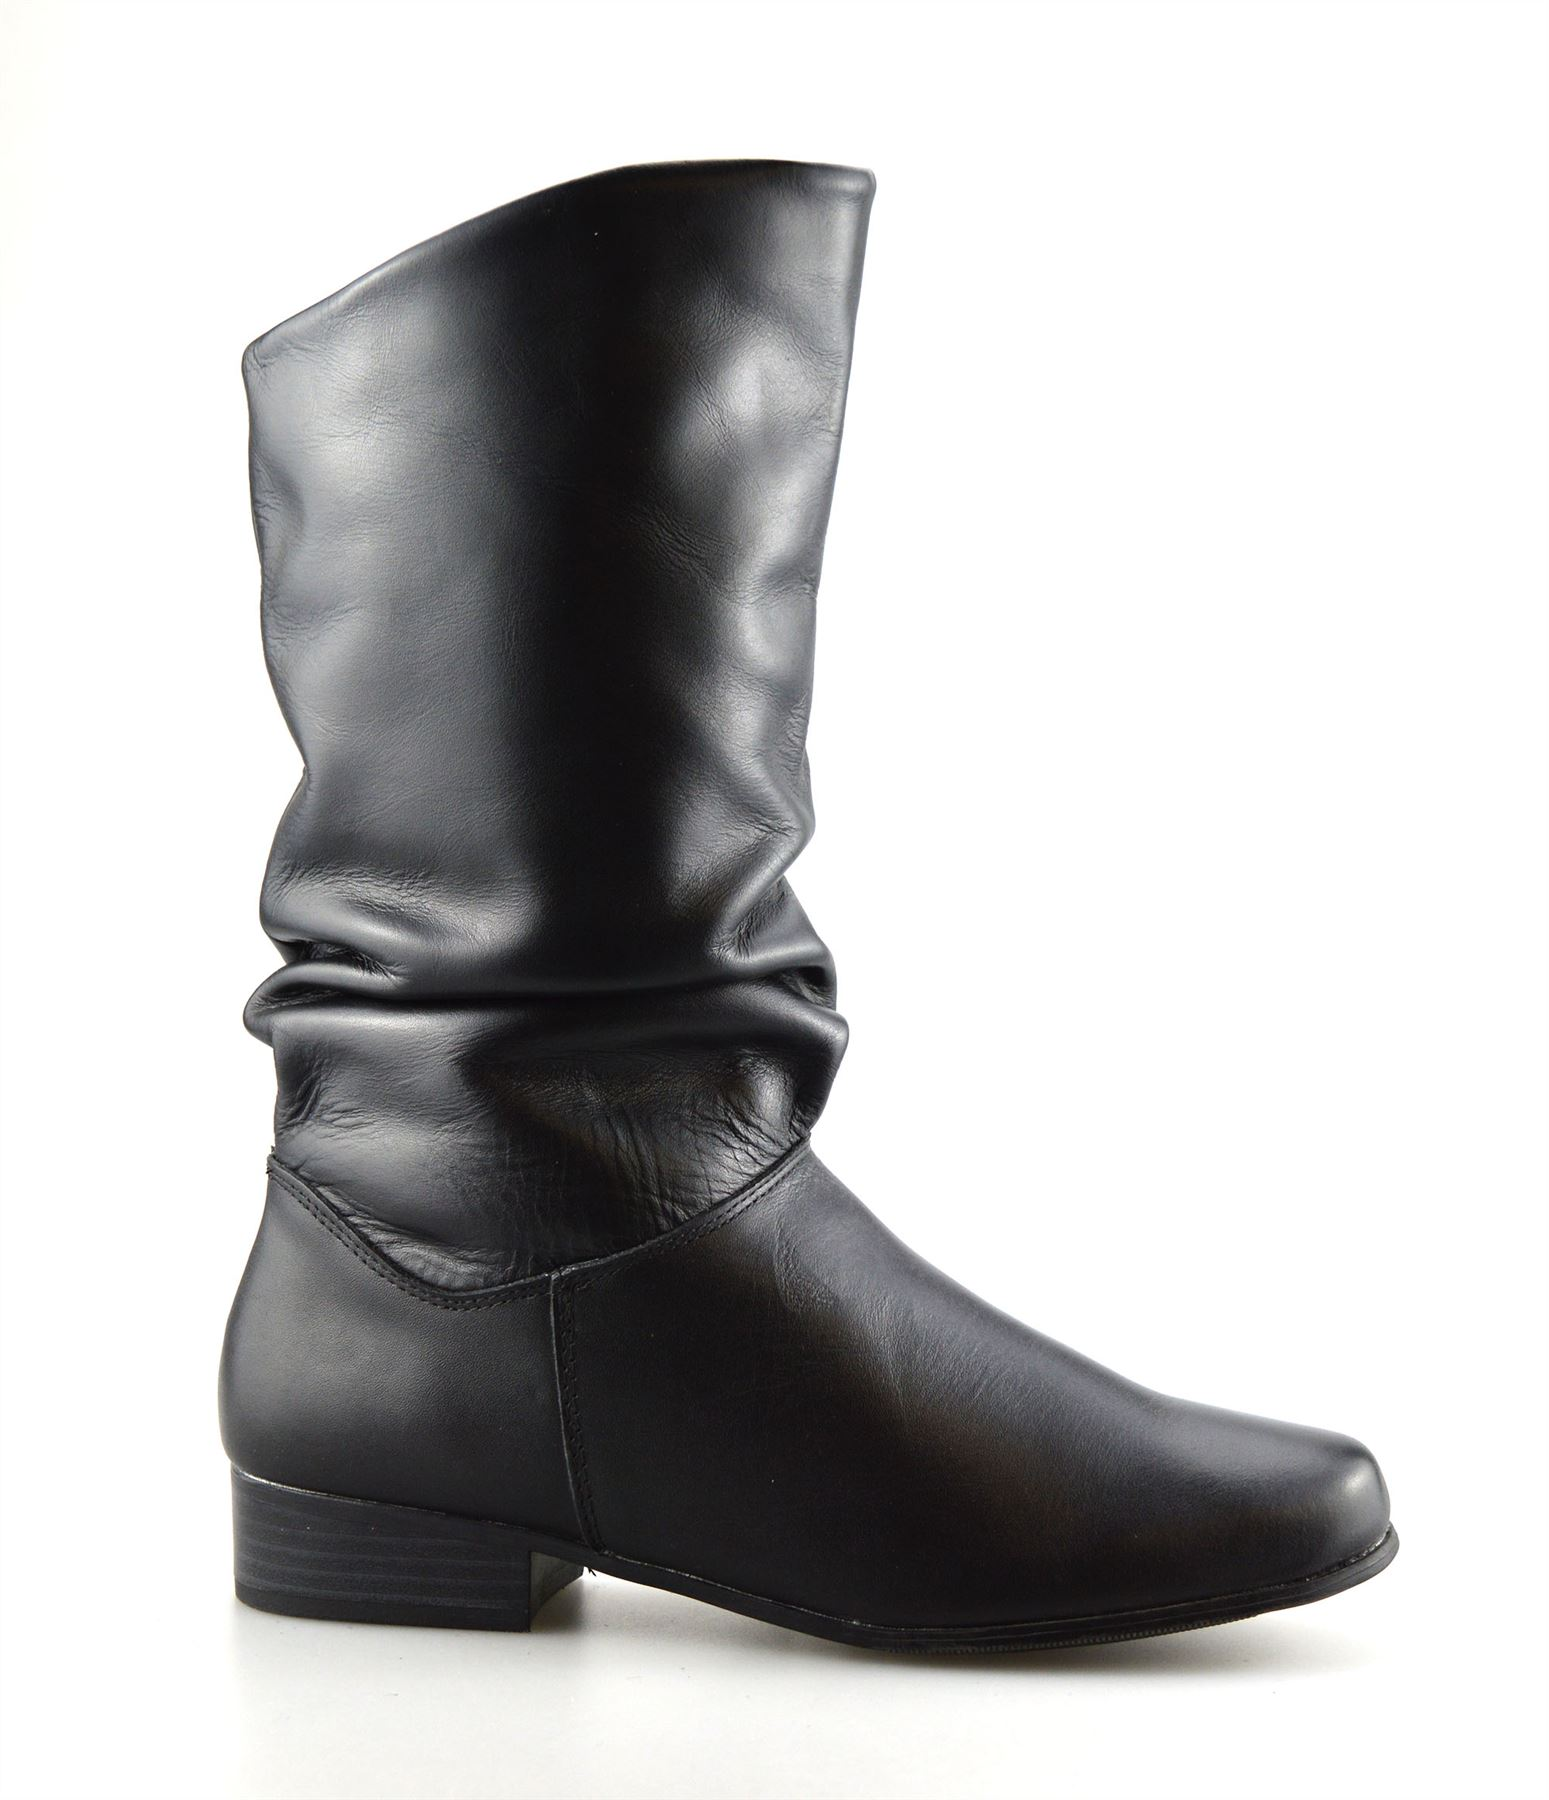 e4585767e79 Details about Ladies Womens New Leather Mid Calf Low Flat Heel Slouch  Riding Boots Shoes Size